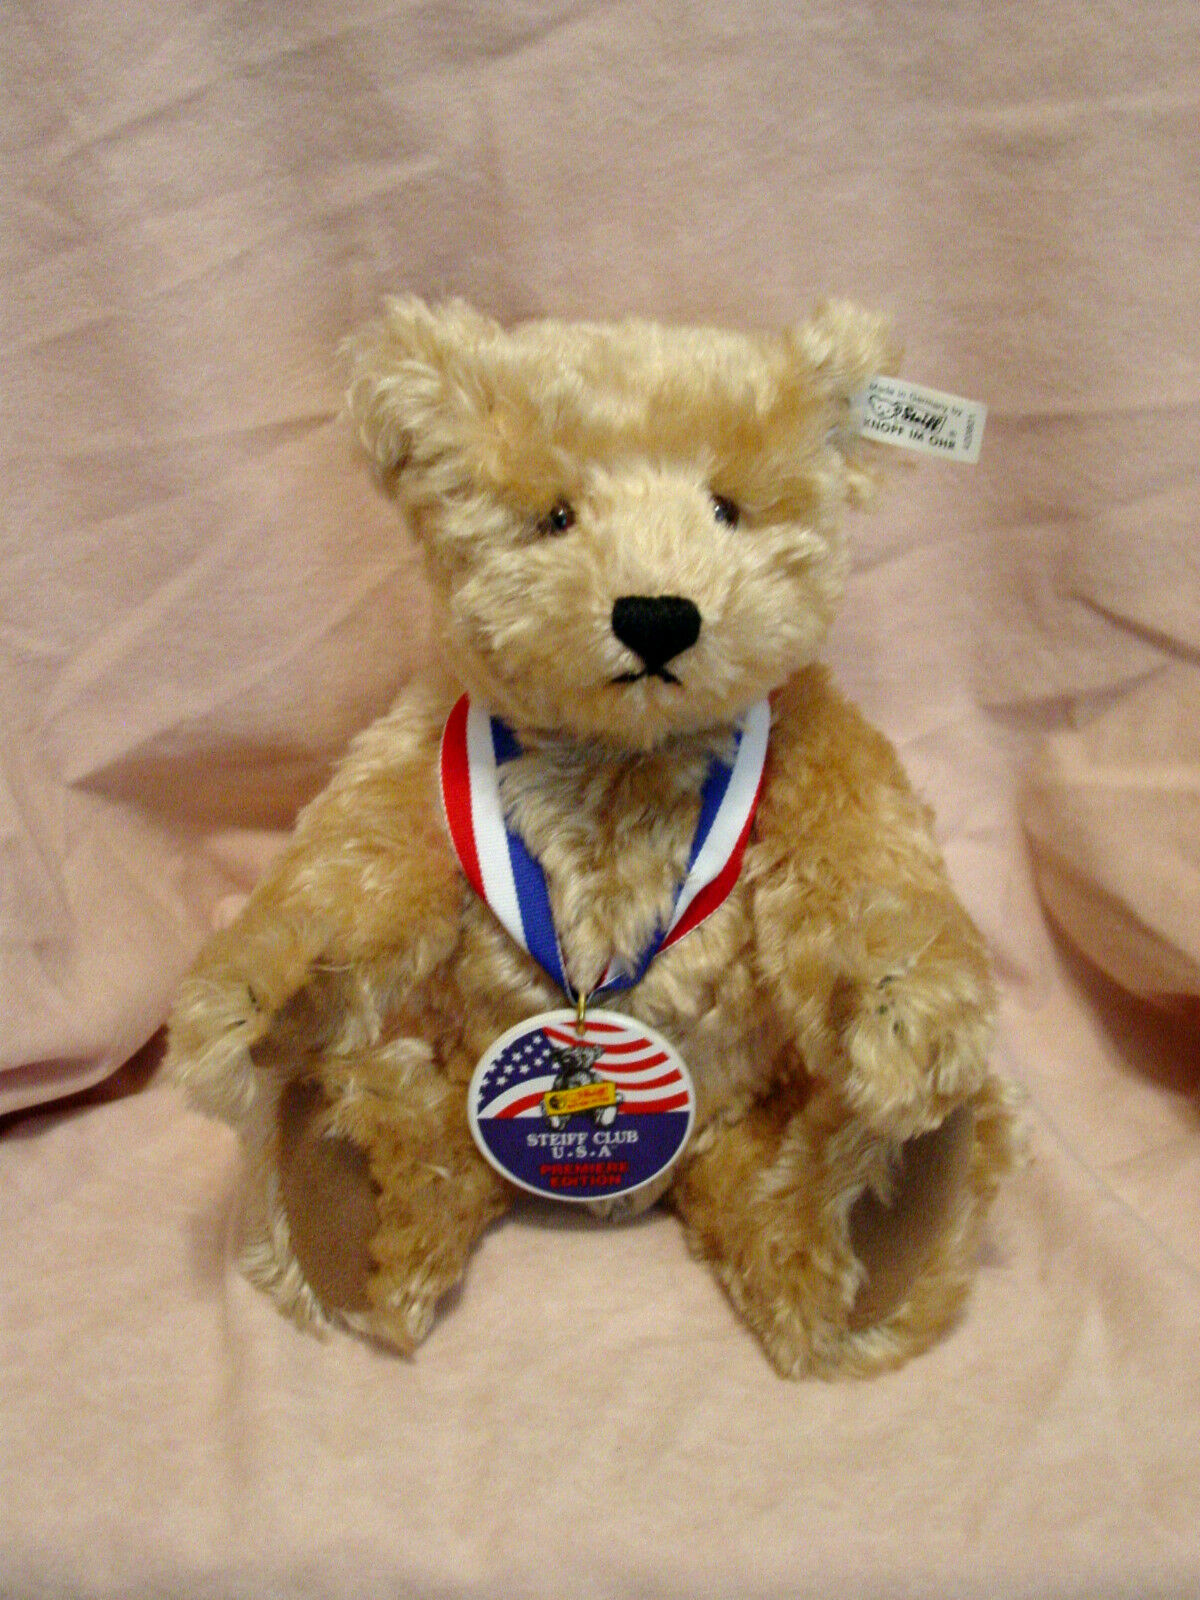 Steiff -  Sam  Teddy Bear - Steiff USA Premiere Club Teddy Bear from 1993